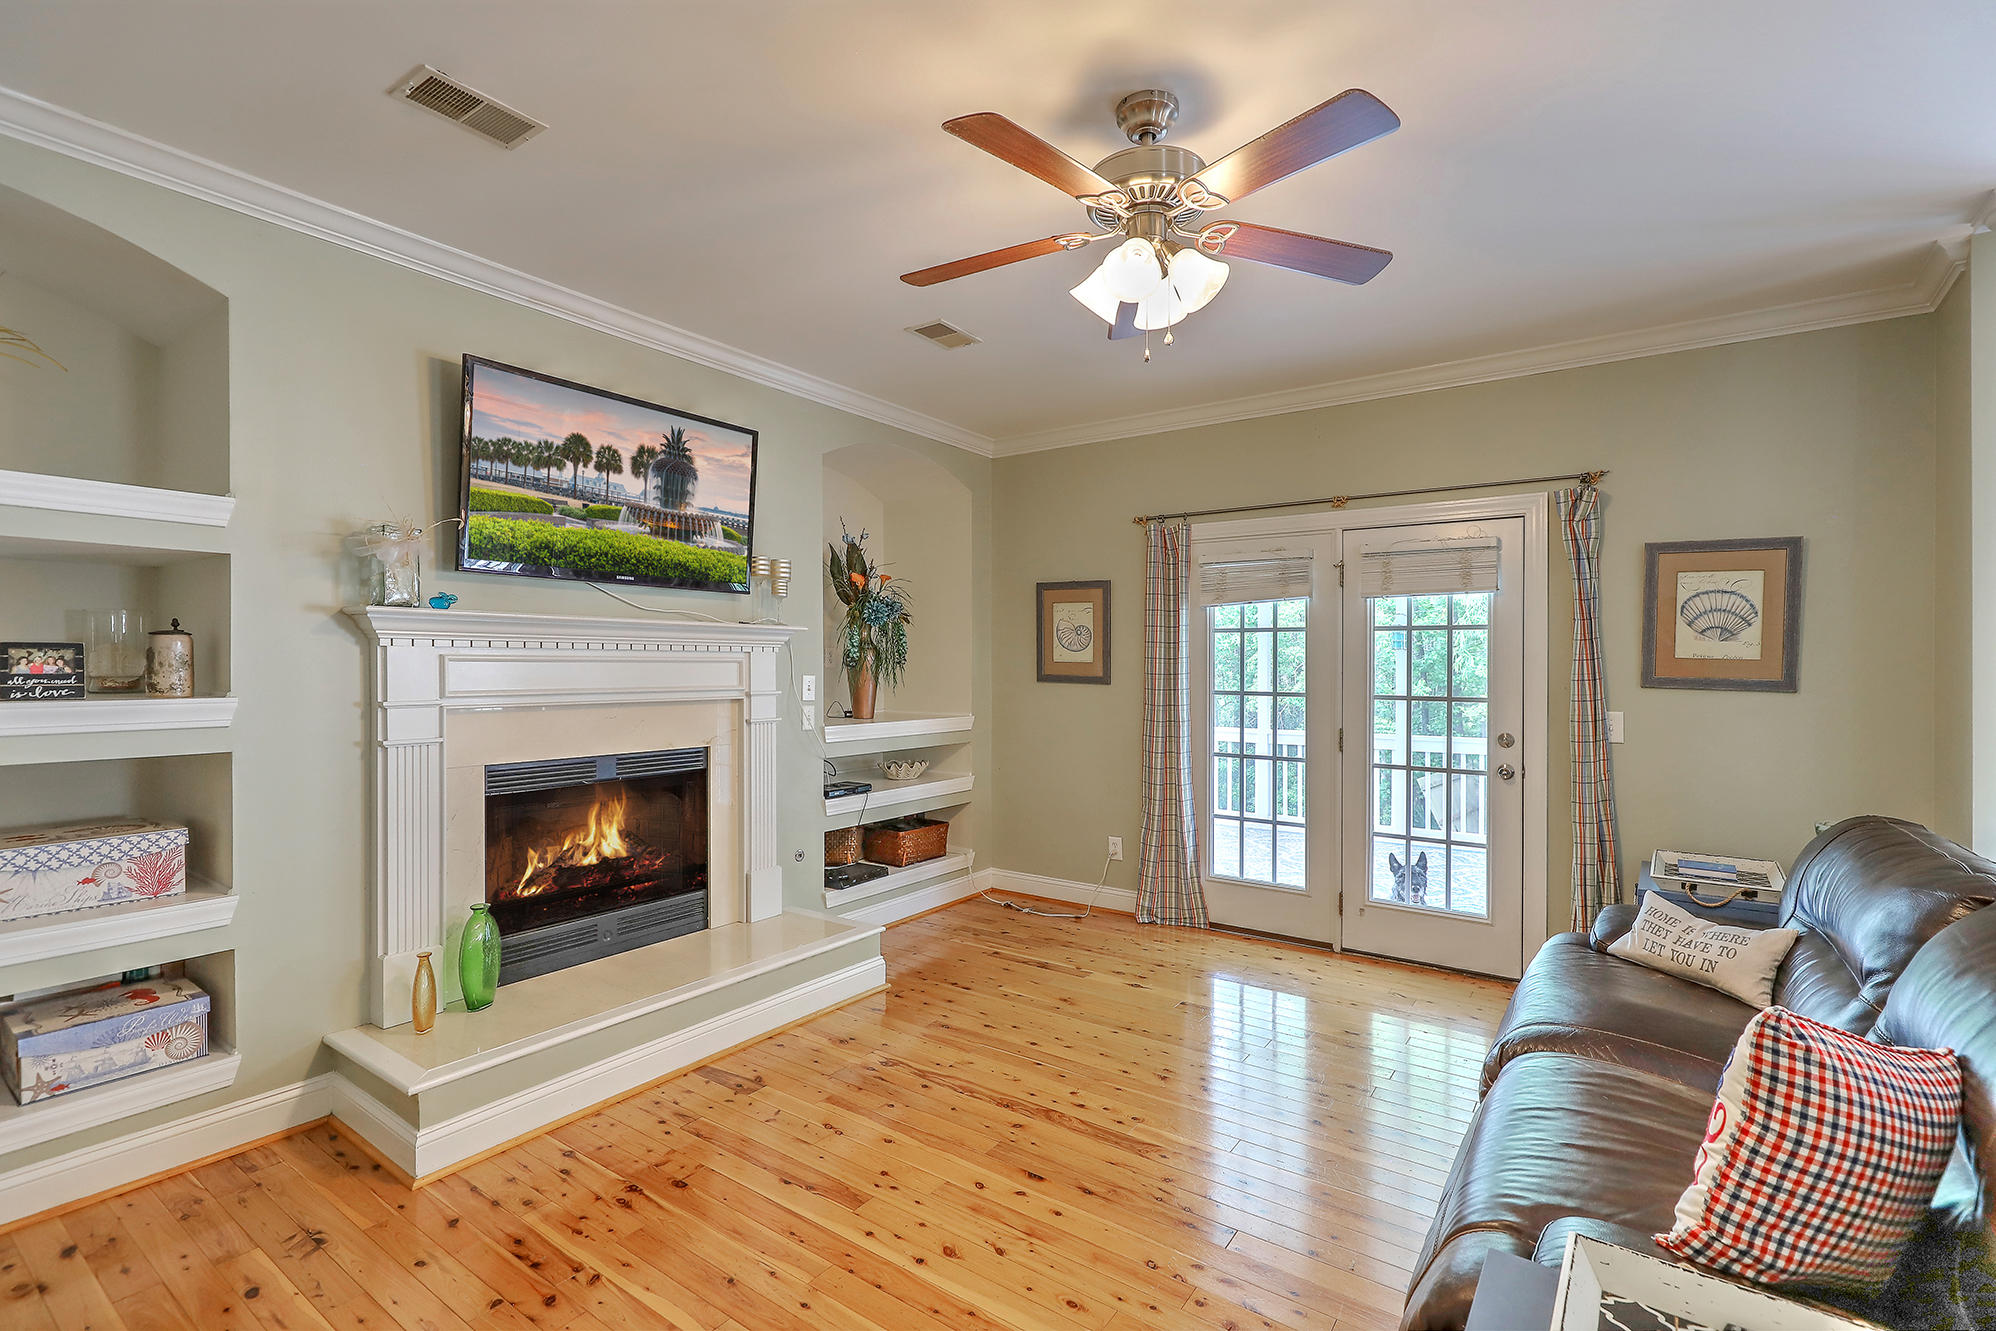 Rivertowne On The Wando Homes For Sale - 2182 Sandy Point Lane, Mount Pleasant, SC - 35